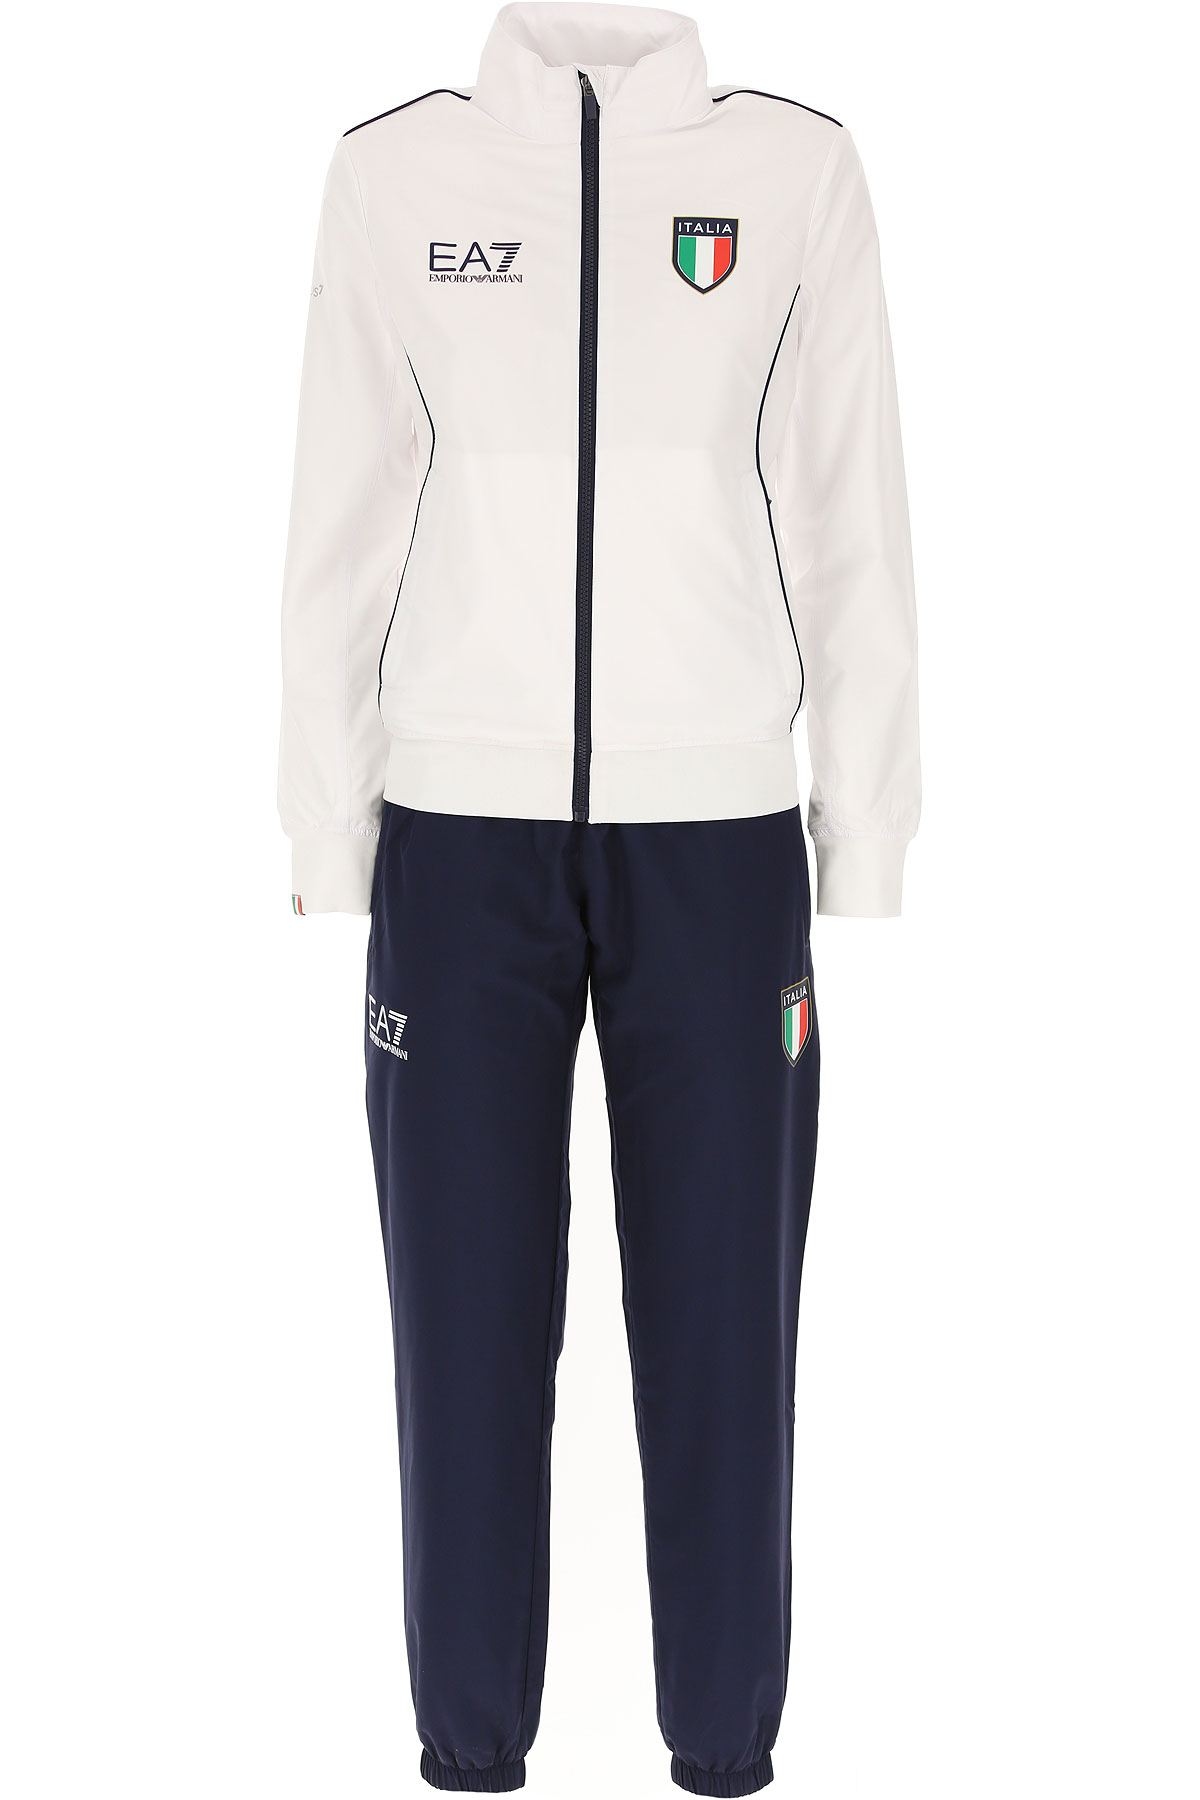 Emporio Armani Women's Sportswear for Gym Workouts and Running On Sale in Outlet, White, polyester, 2019, 10 8